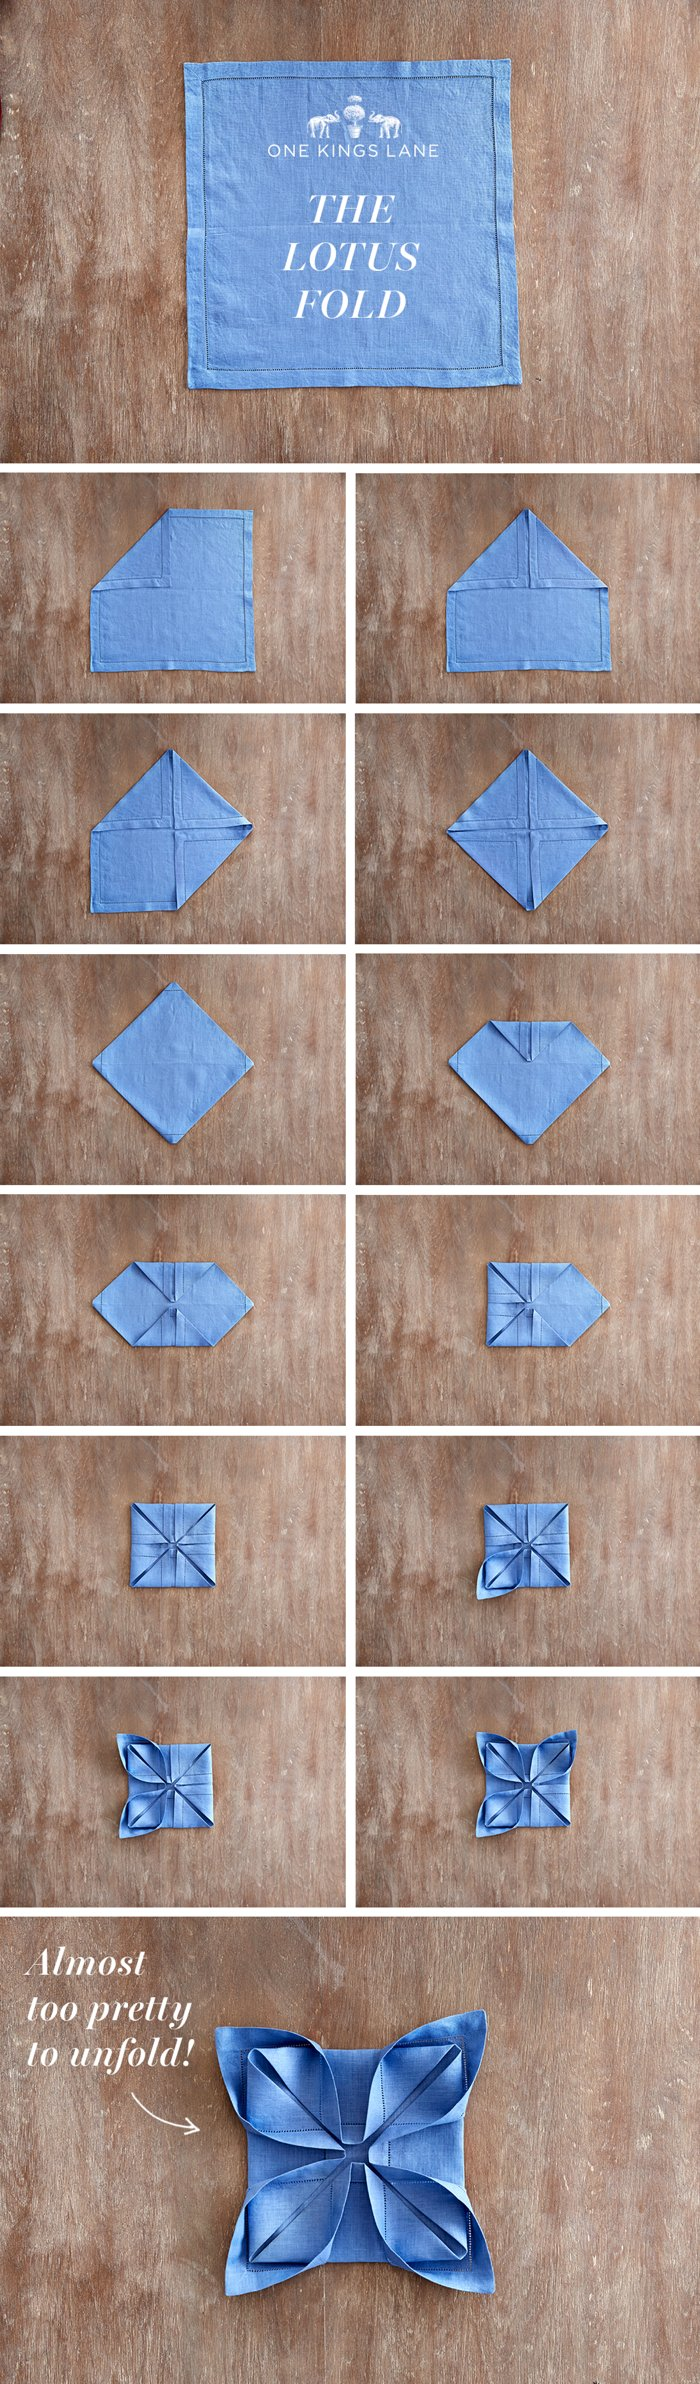 Lotus Napkin Fold Easy :  to Nailing 3 Hot Napkin Folds – One Kings Lane — Our Style Blog